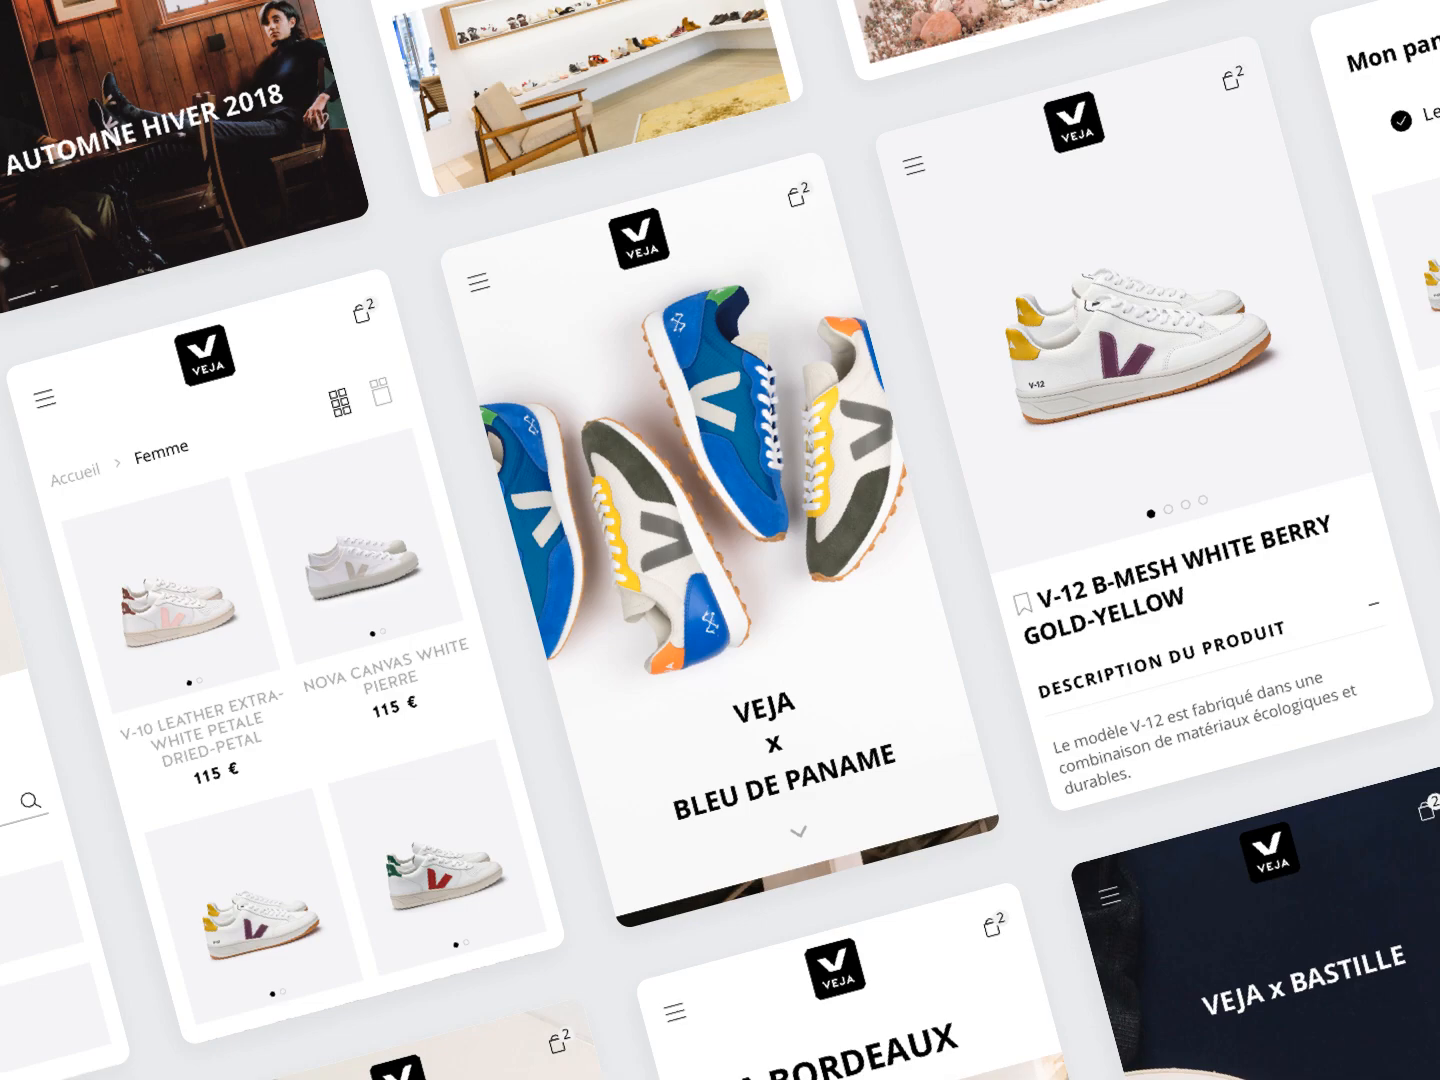 Veja designs, themes, templates and